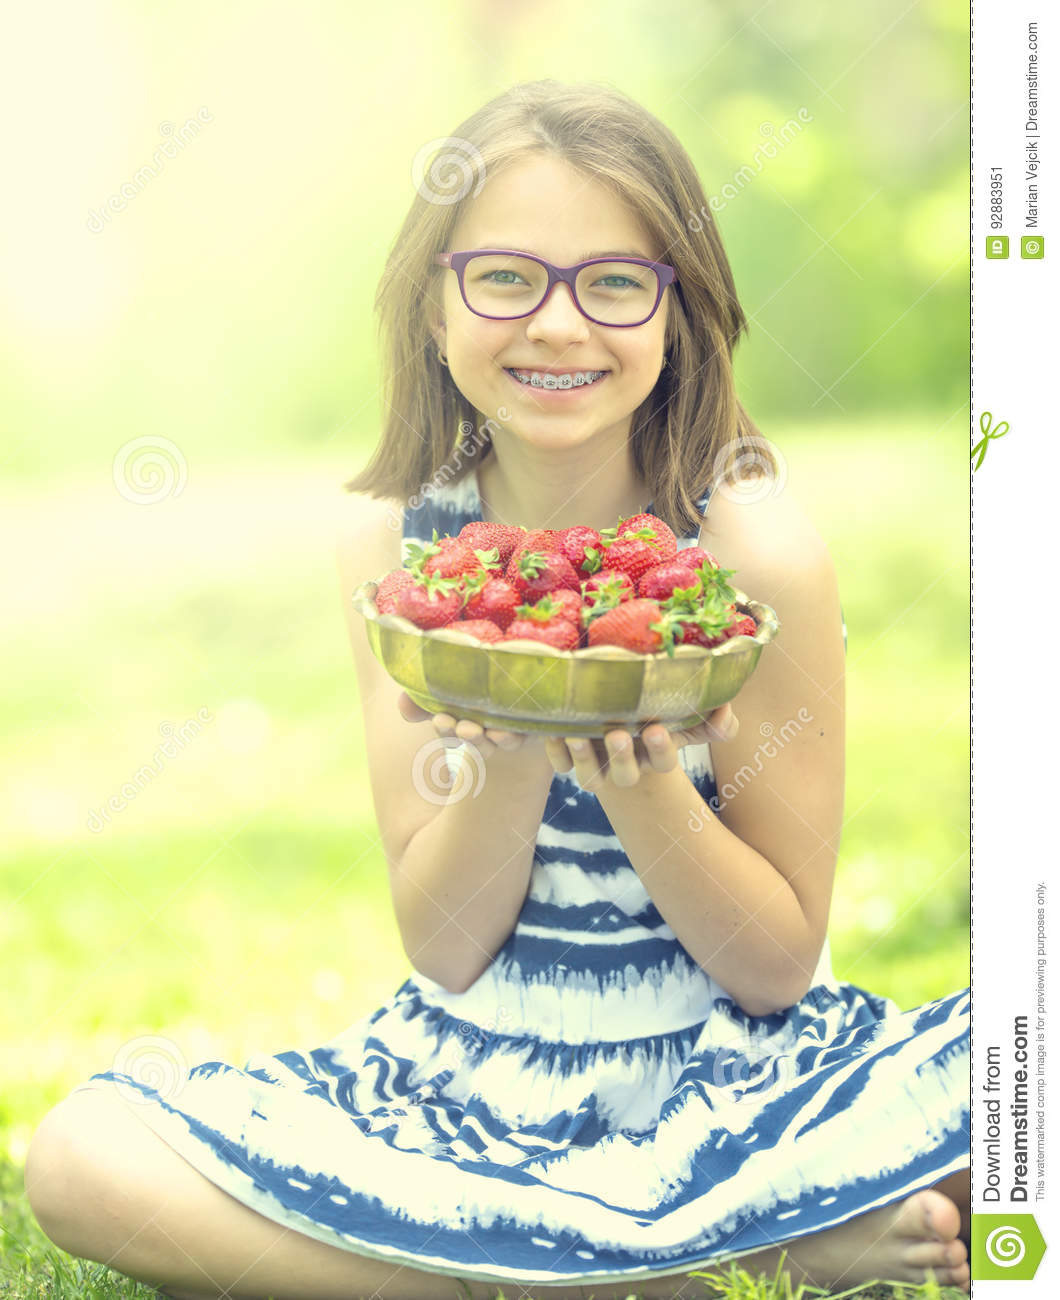 Cute Little Girl With Bowl Full Of Fresh Strawberries Pre